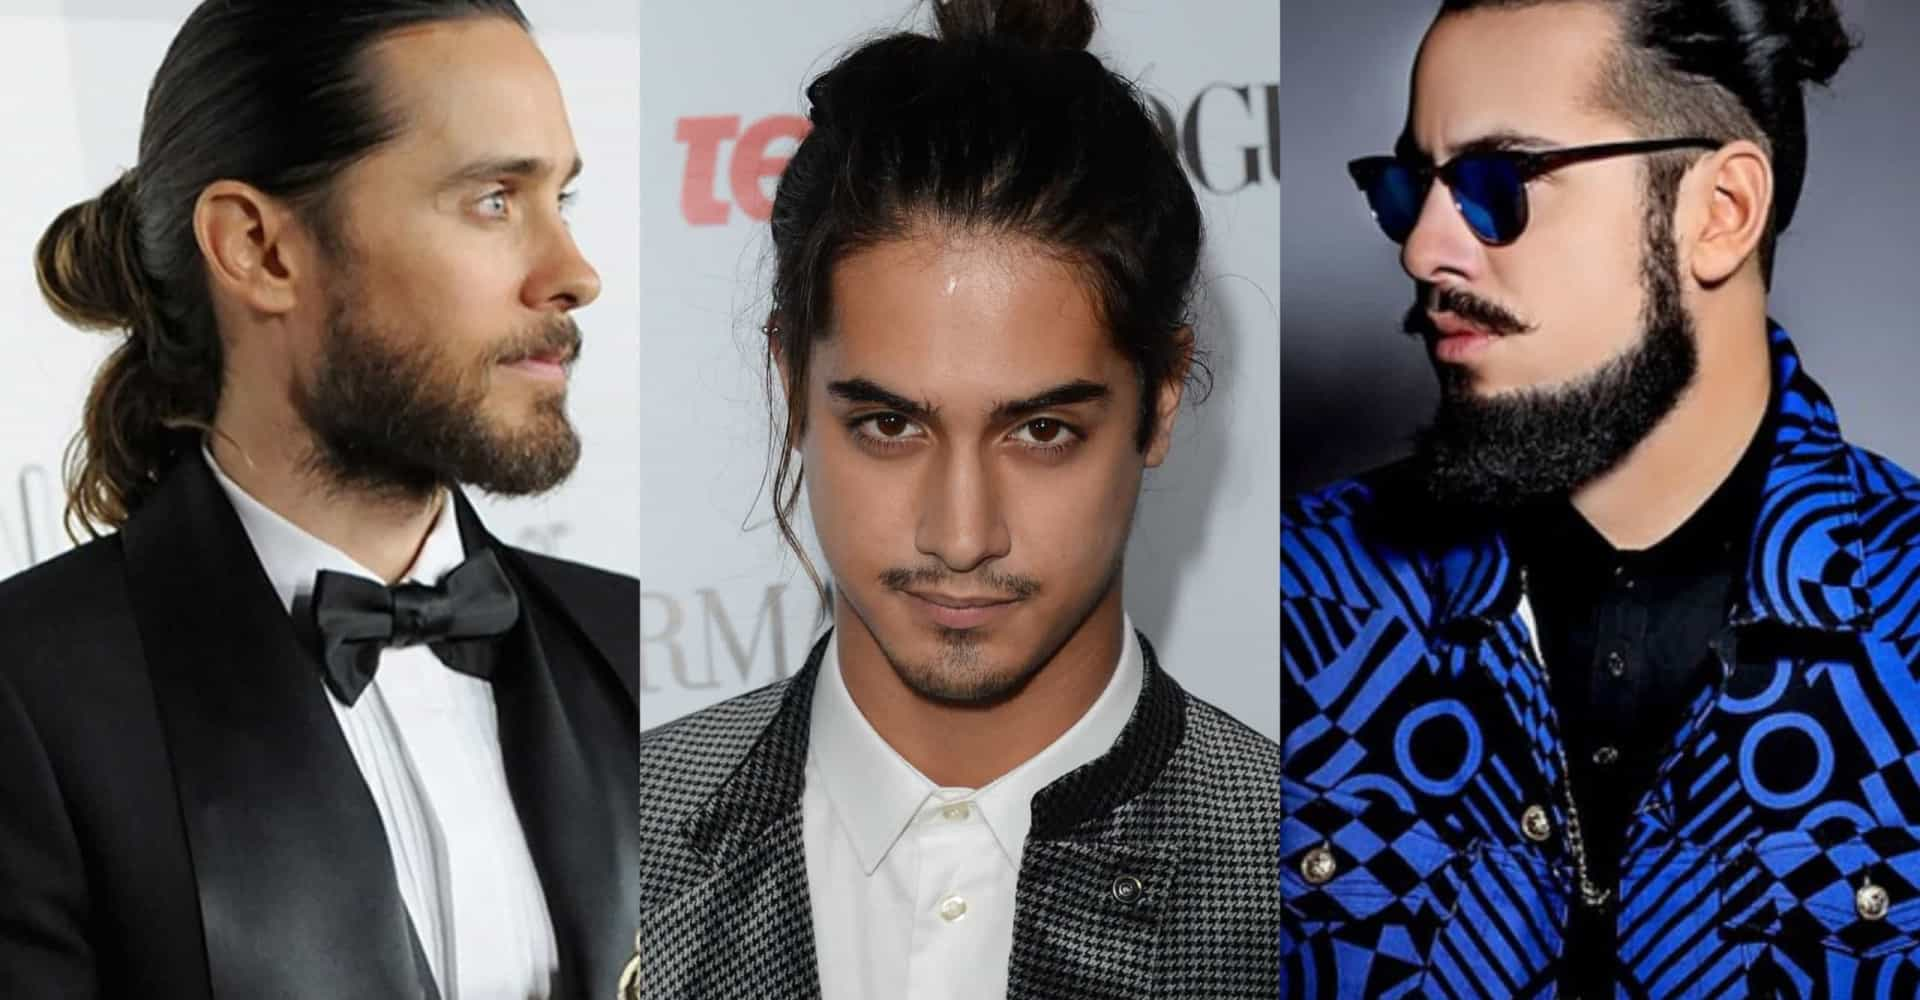 These celebs totally rock man buns